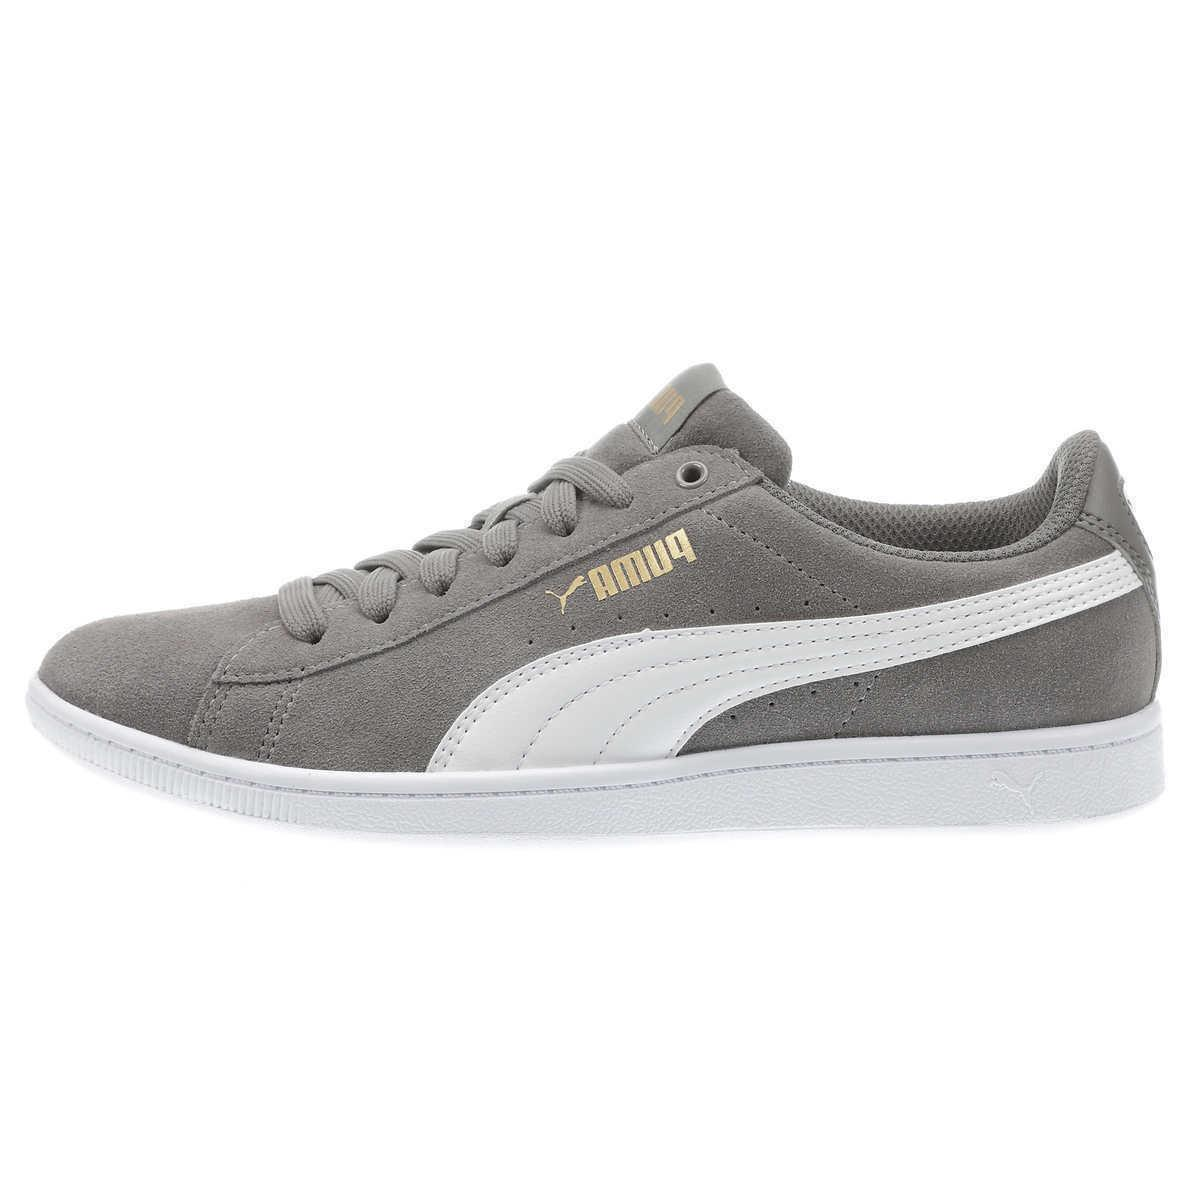 *NEW* PUMA Ladies' Vikky Suede Shoes Softfoam Low-Top